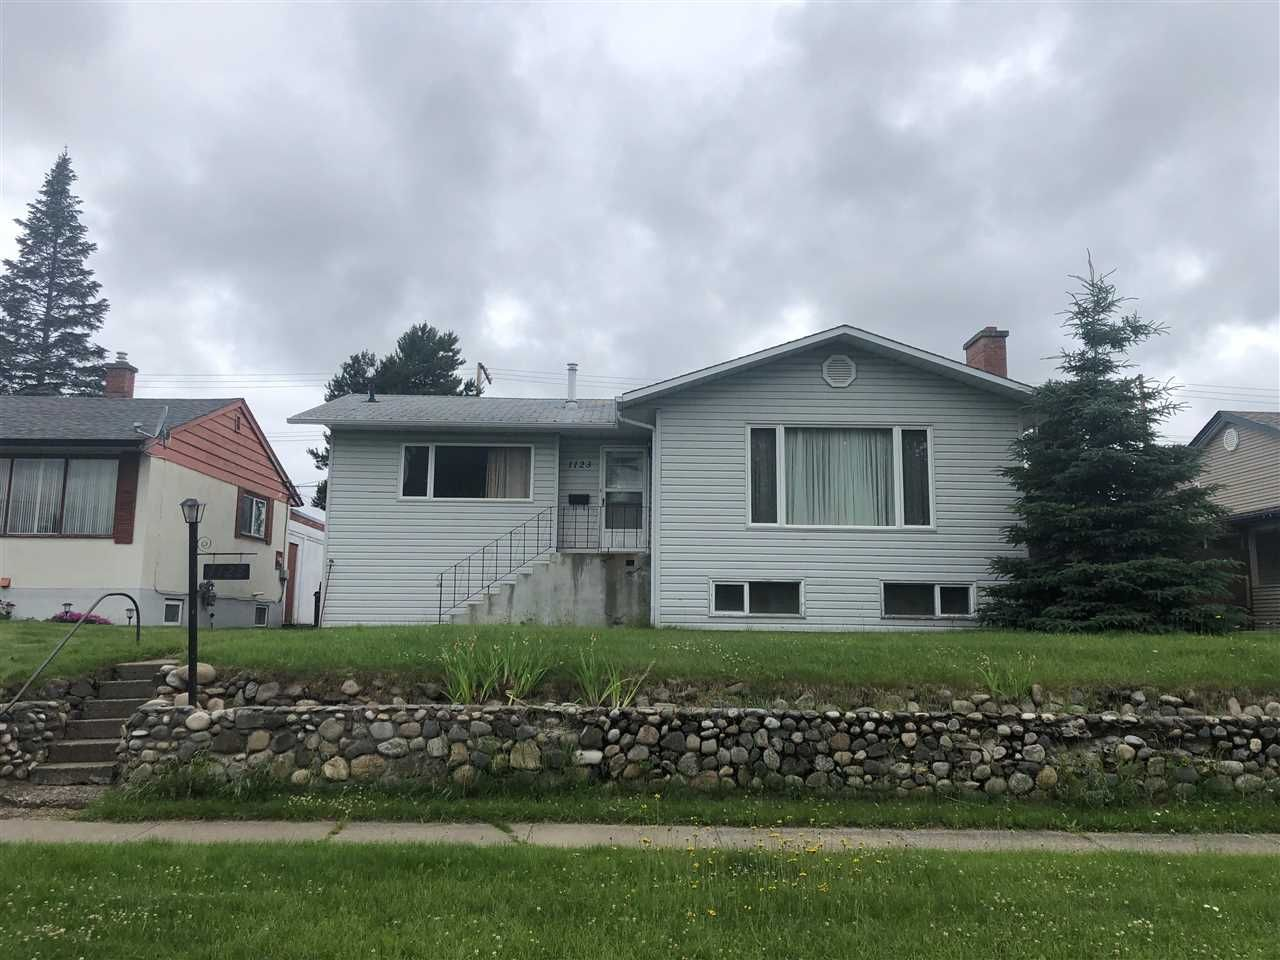 Main Photo: 1123 EWERT Street in Prince George: Central House for sale (PG City Central (Zone 72))  : MLS®# R2470794